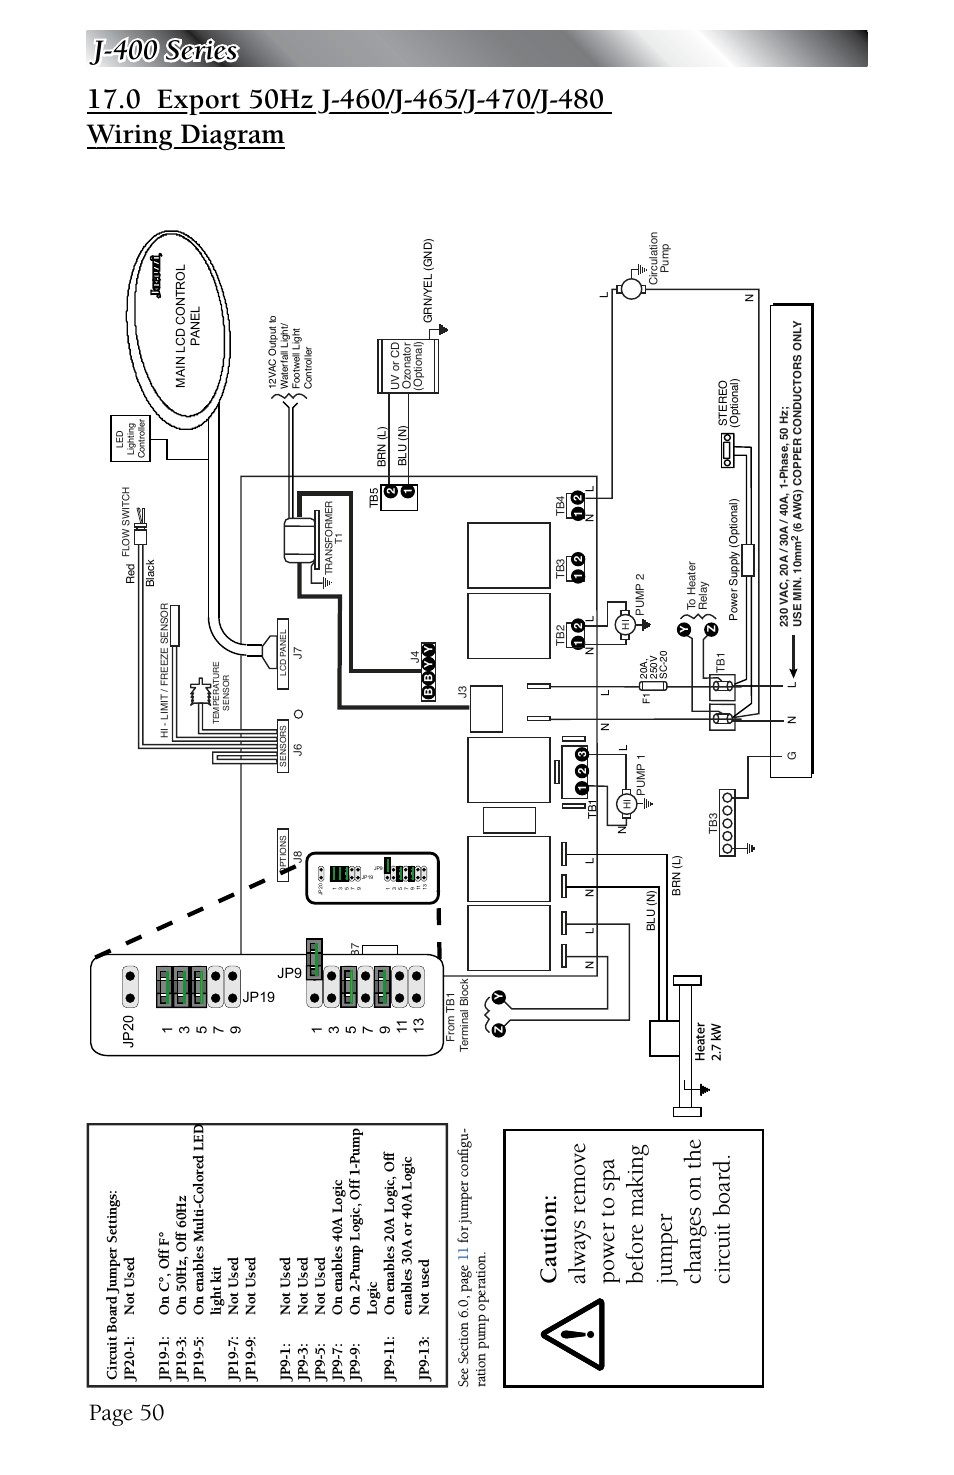 2003 cushman 2200 wiring diagram